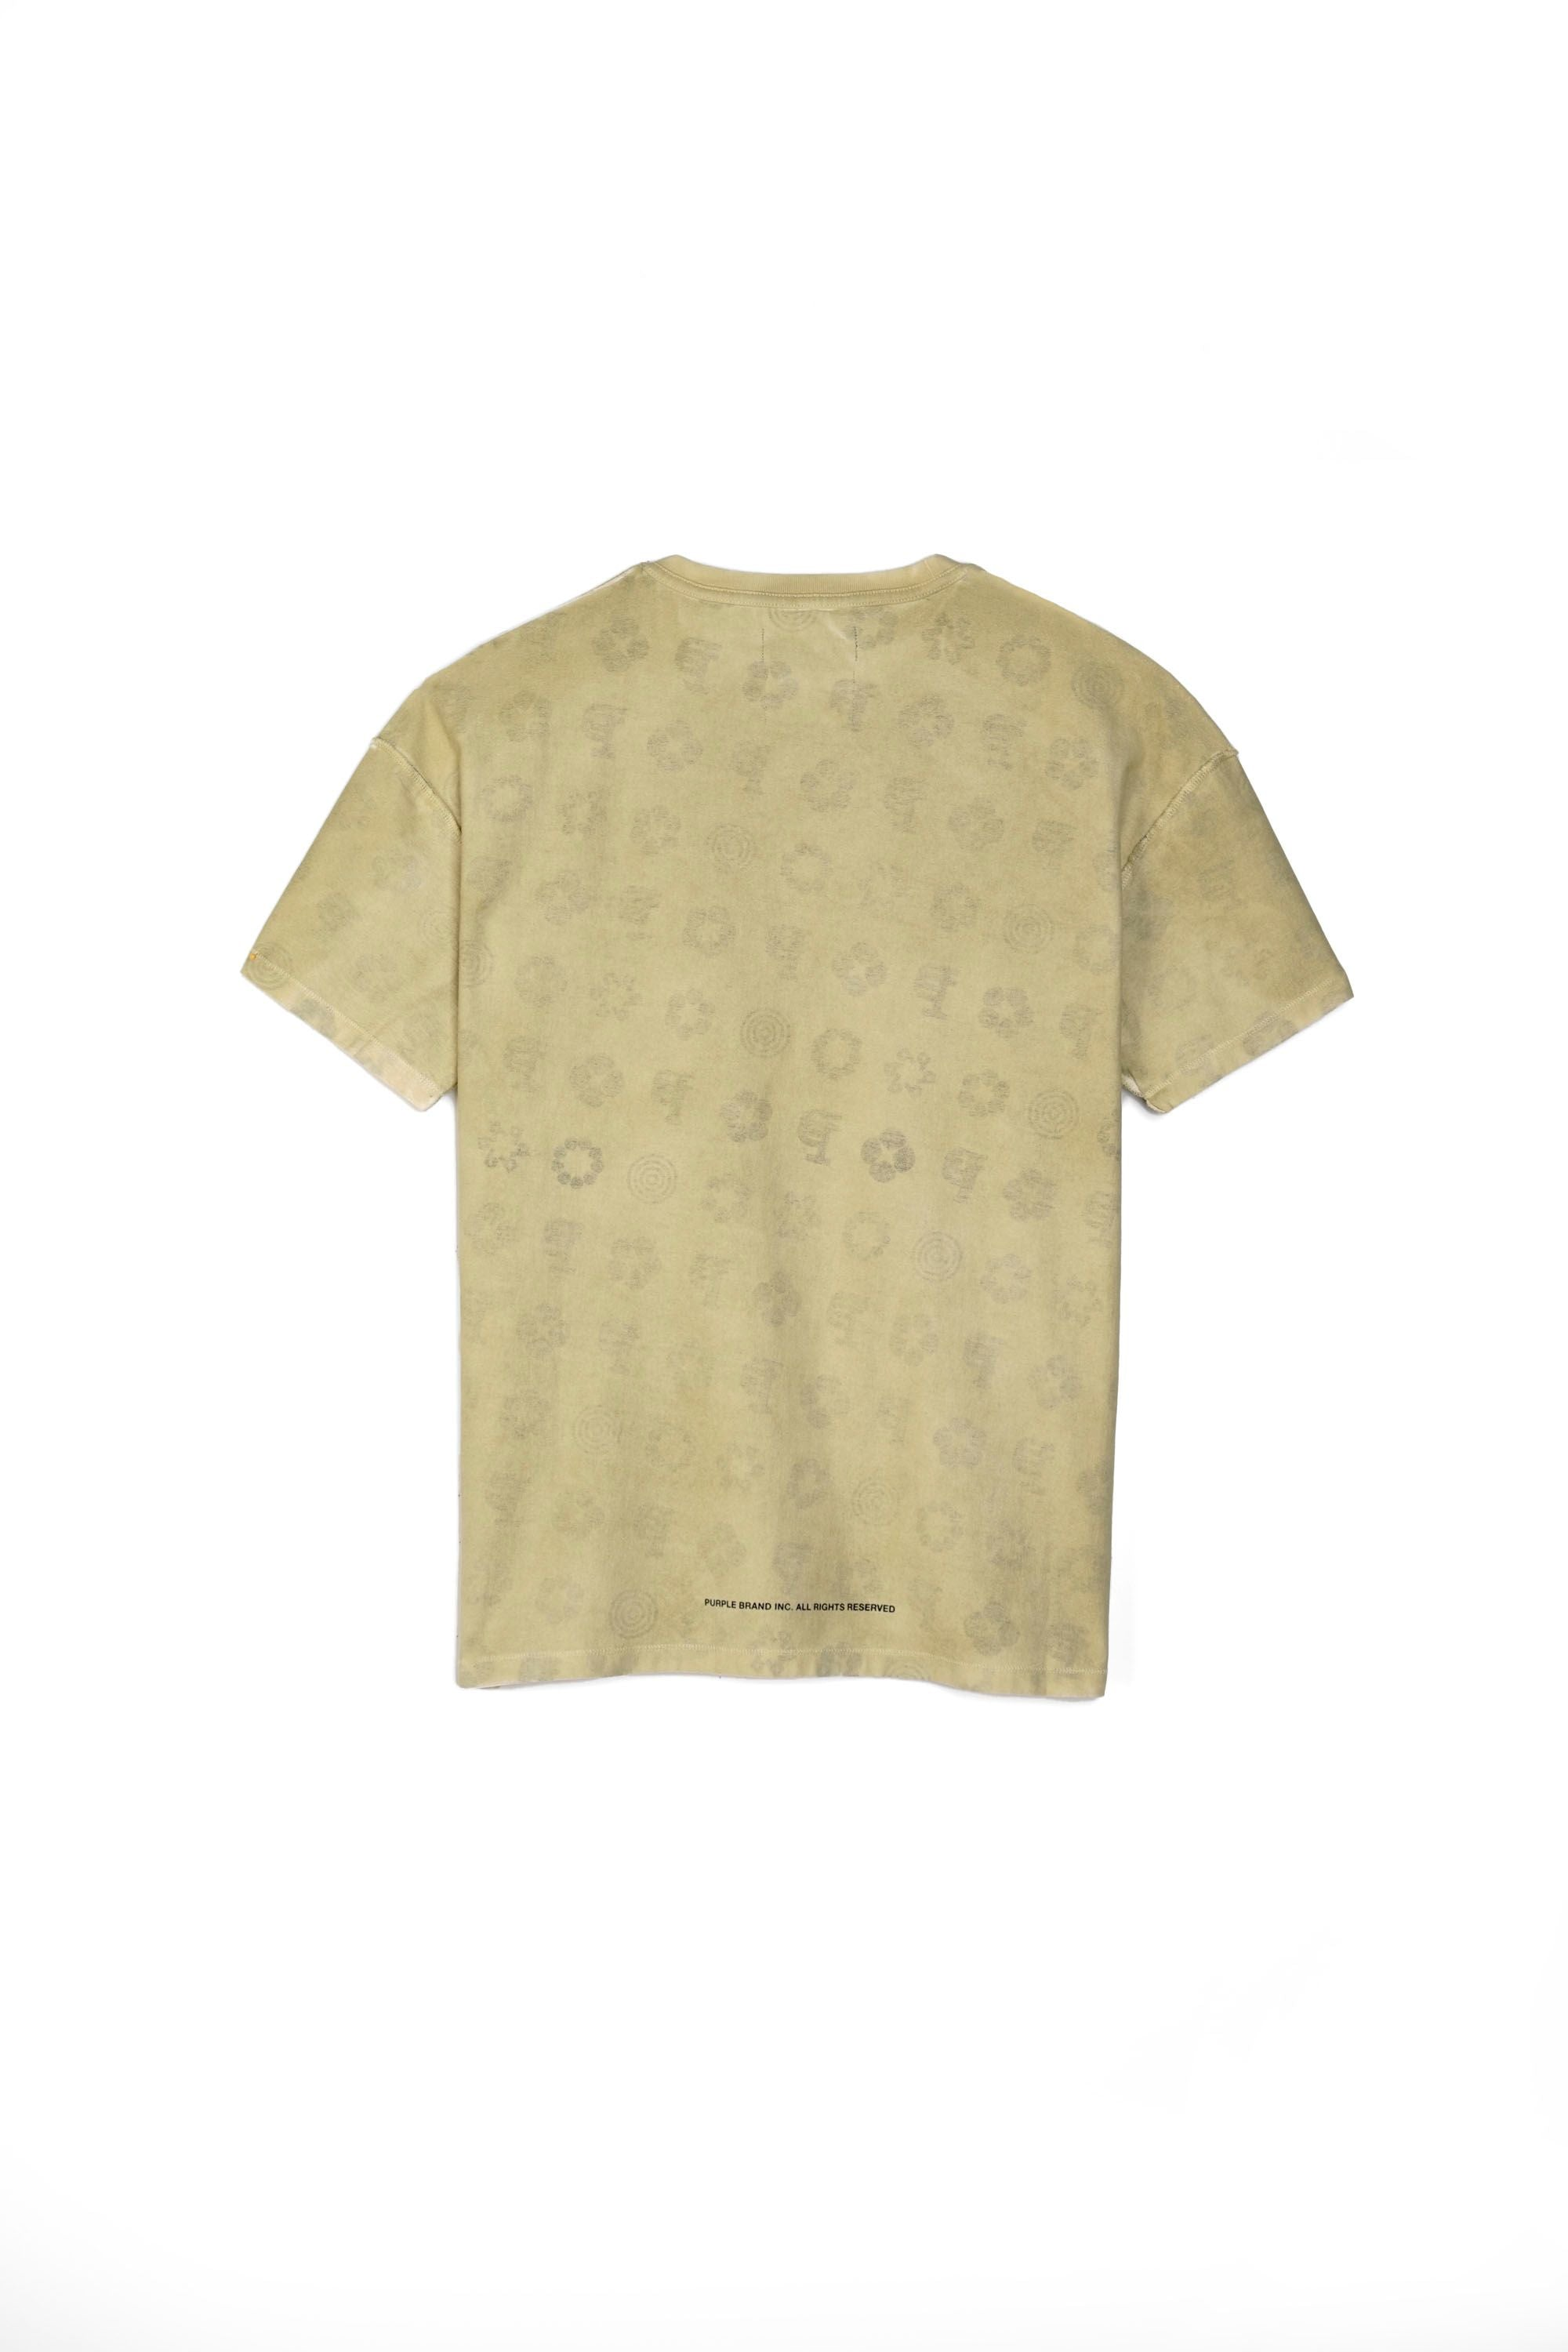 P101 RELAXED FIT - MOSS SPRAY TEE WITH INNER MONOGRAM PRINT